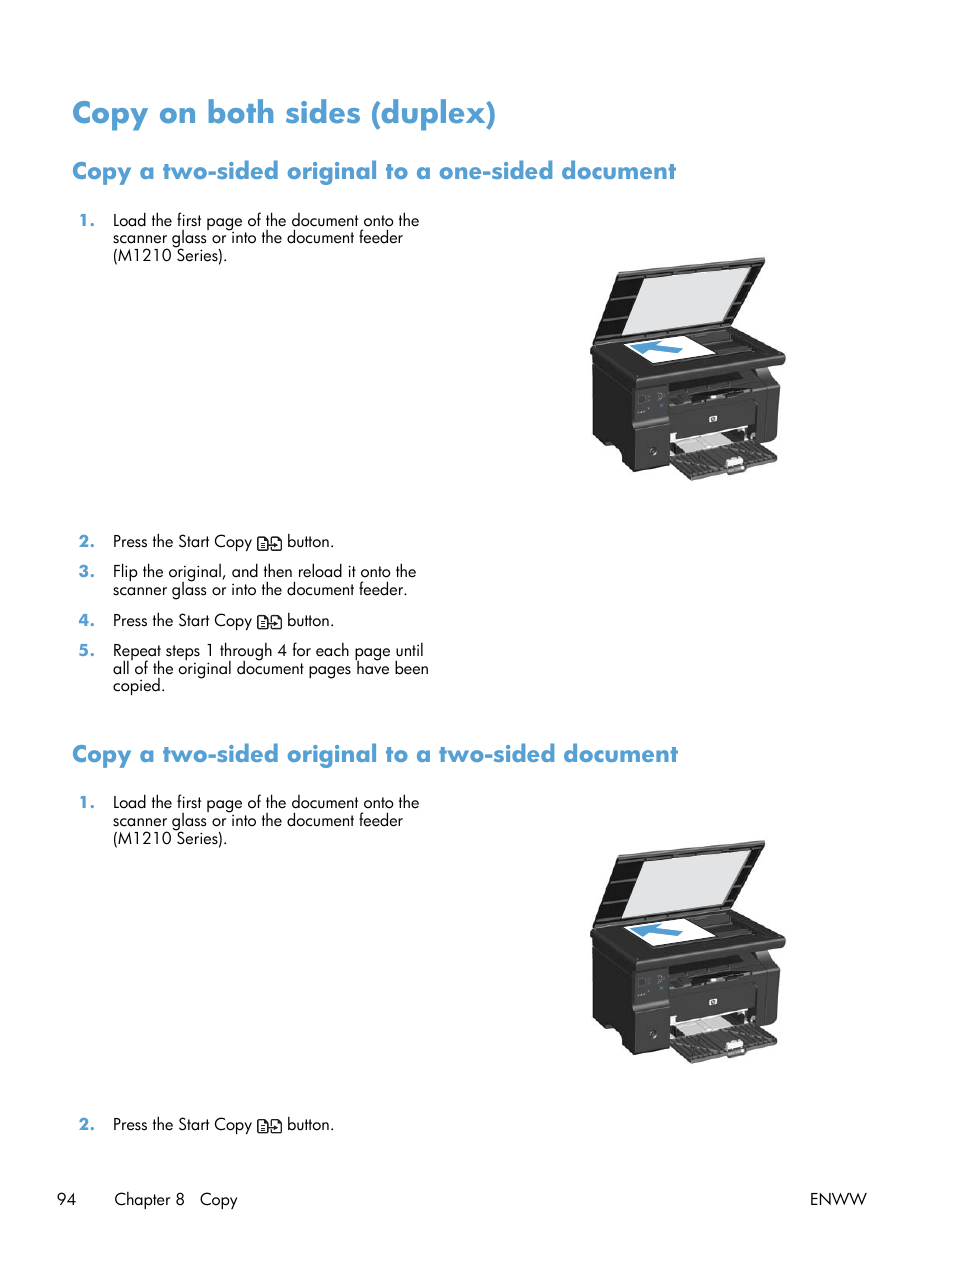 ... Copy a two-sided original to a one-sided document, Copy a two-sided  original to a two-sided document   HP laserjet m1212nf User Manual   Page  108 / 284